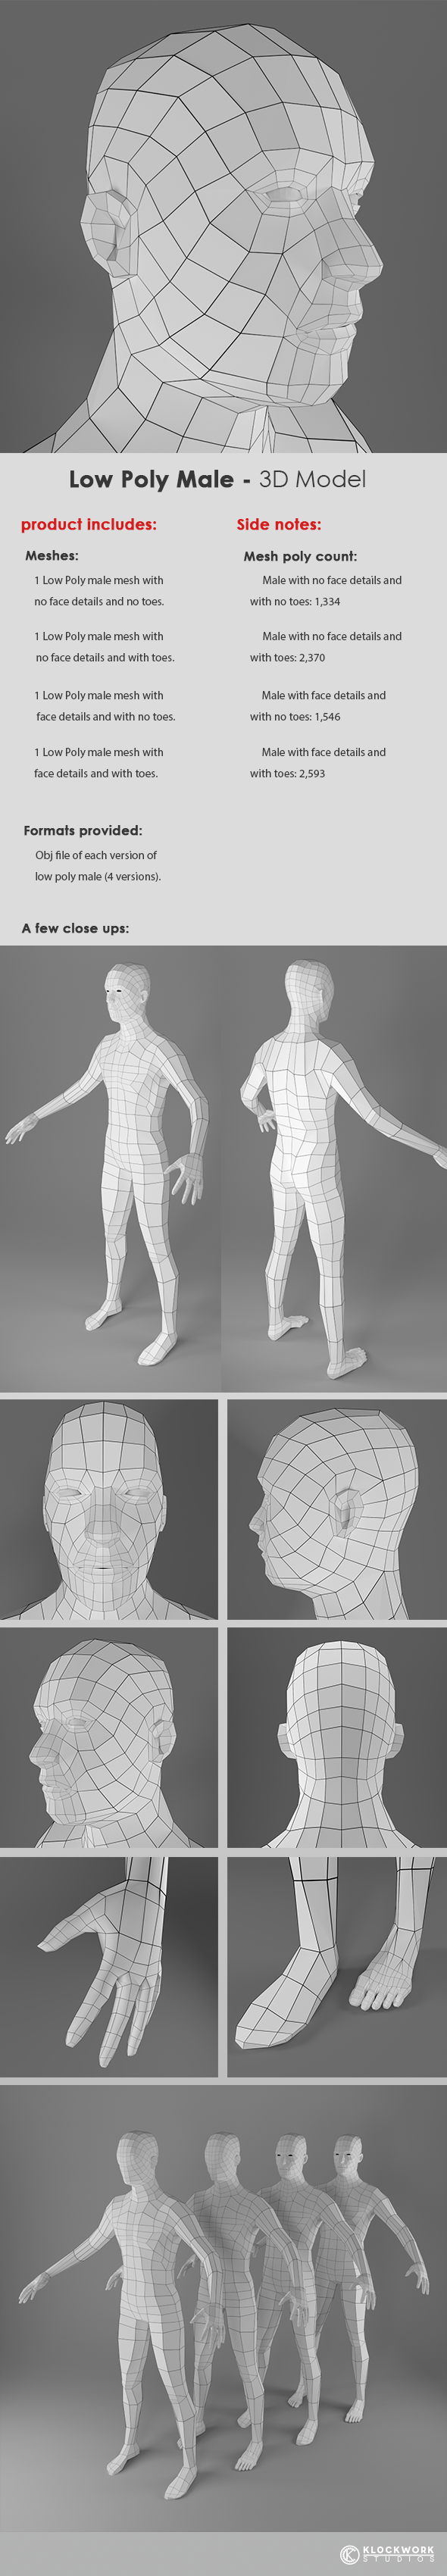 Low Poly Male Base Mesh - 3DOcean Item for Sale